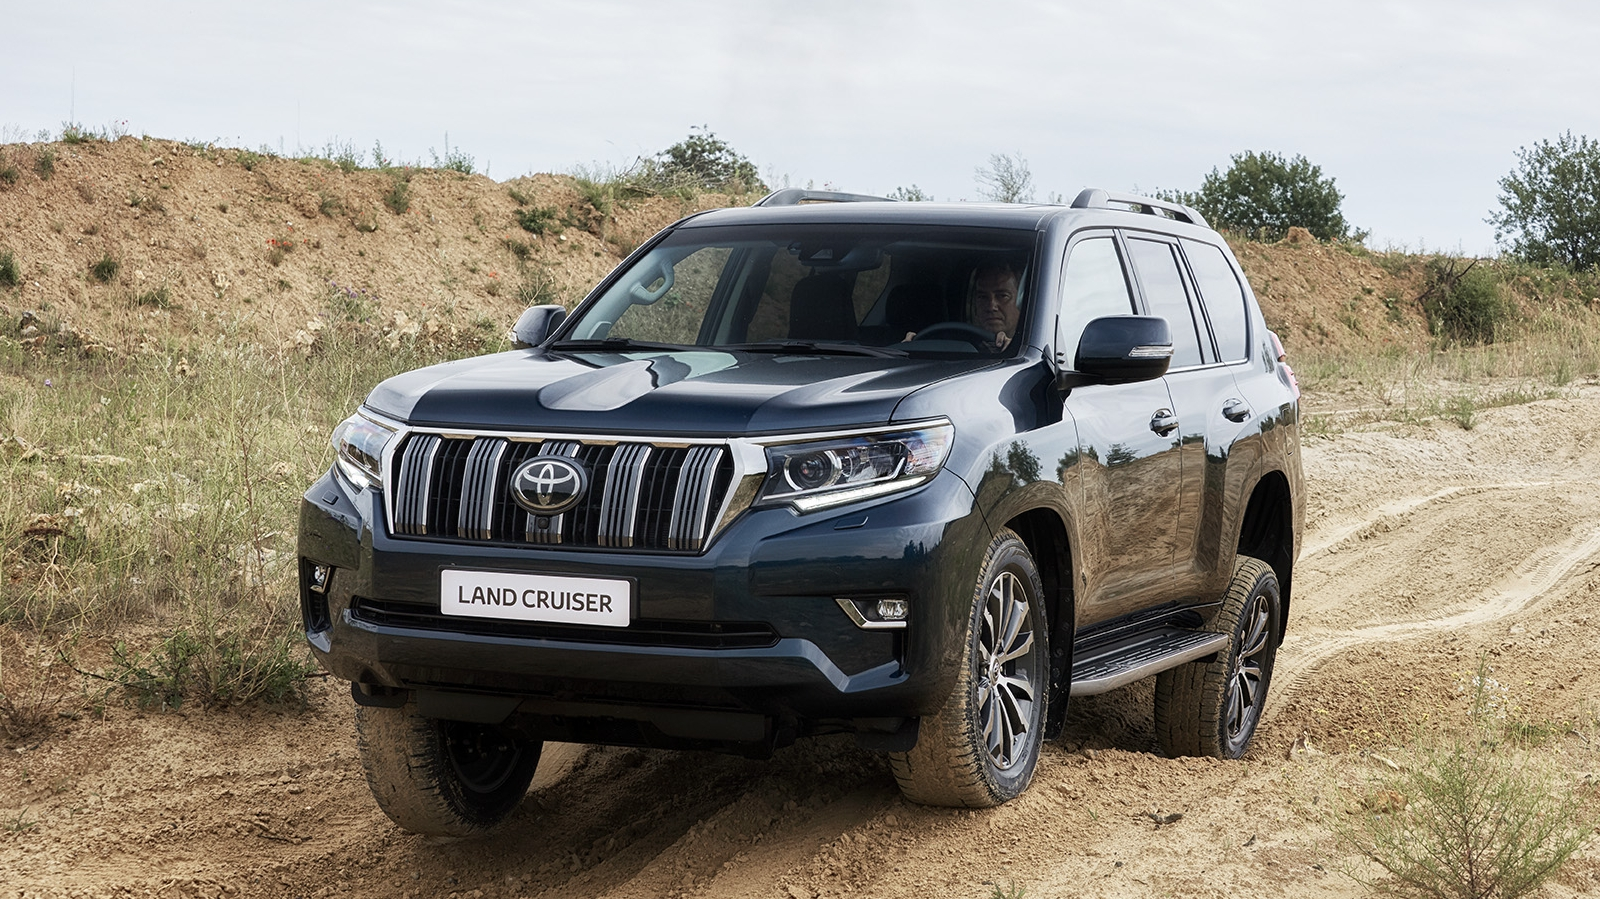 Toyota Land Cruiser Reviews, Specs, Prices, Photos And Videos | Top Speed. »